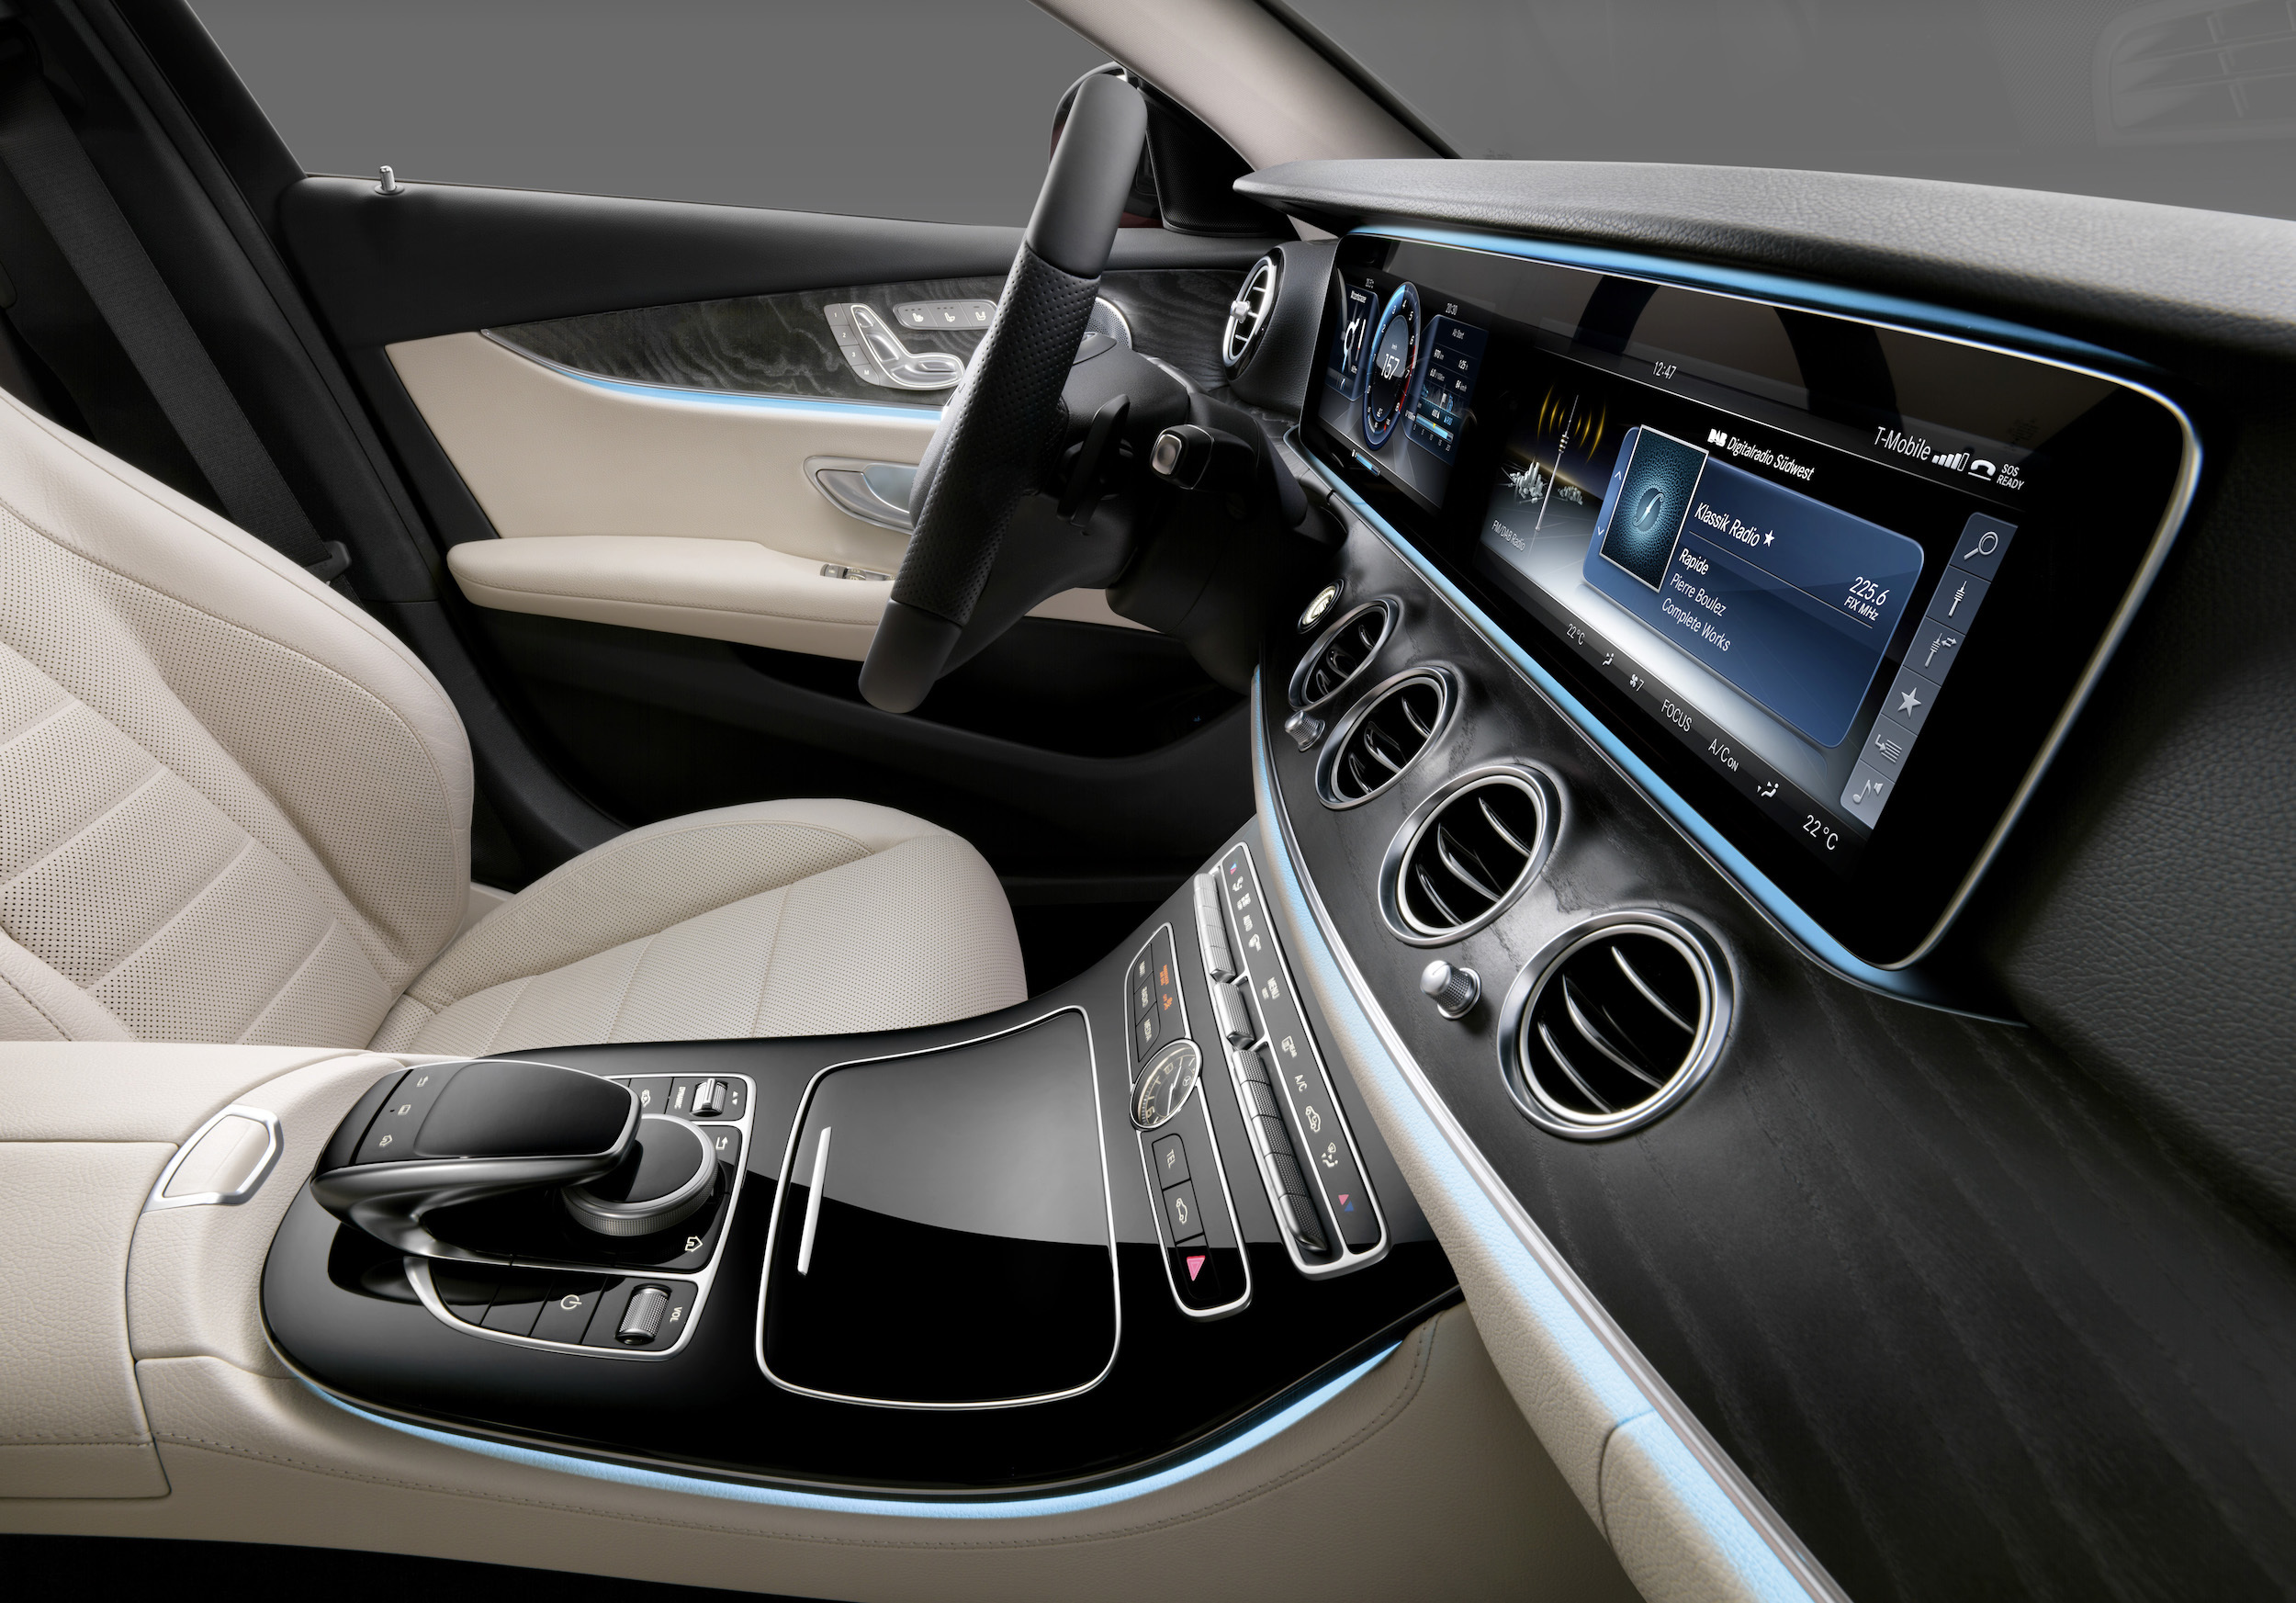 2016 mercedes benz e class interior revealed photos 1 of 8 for Mercedes vito interieur